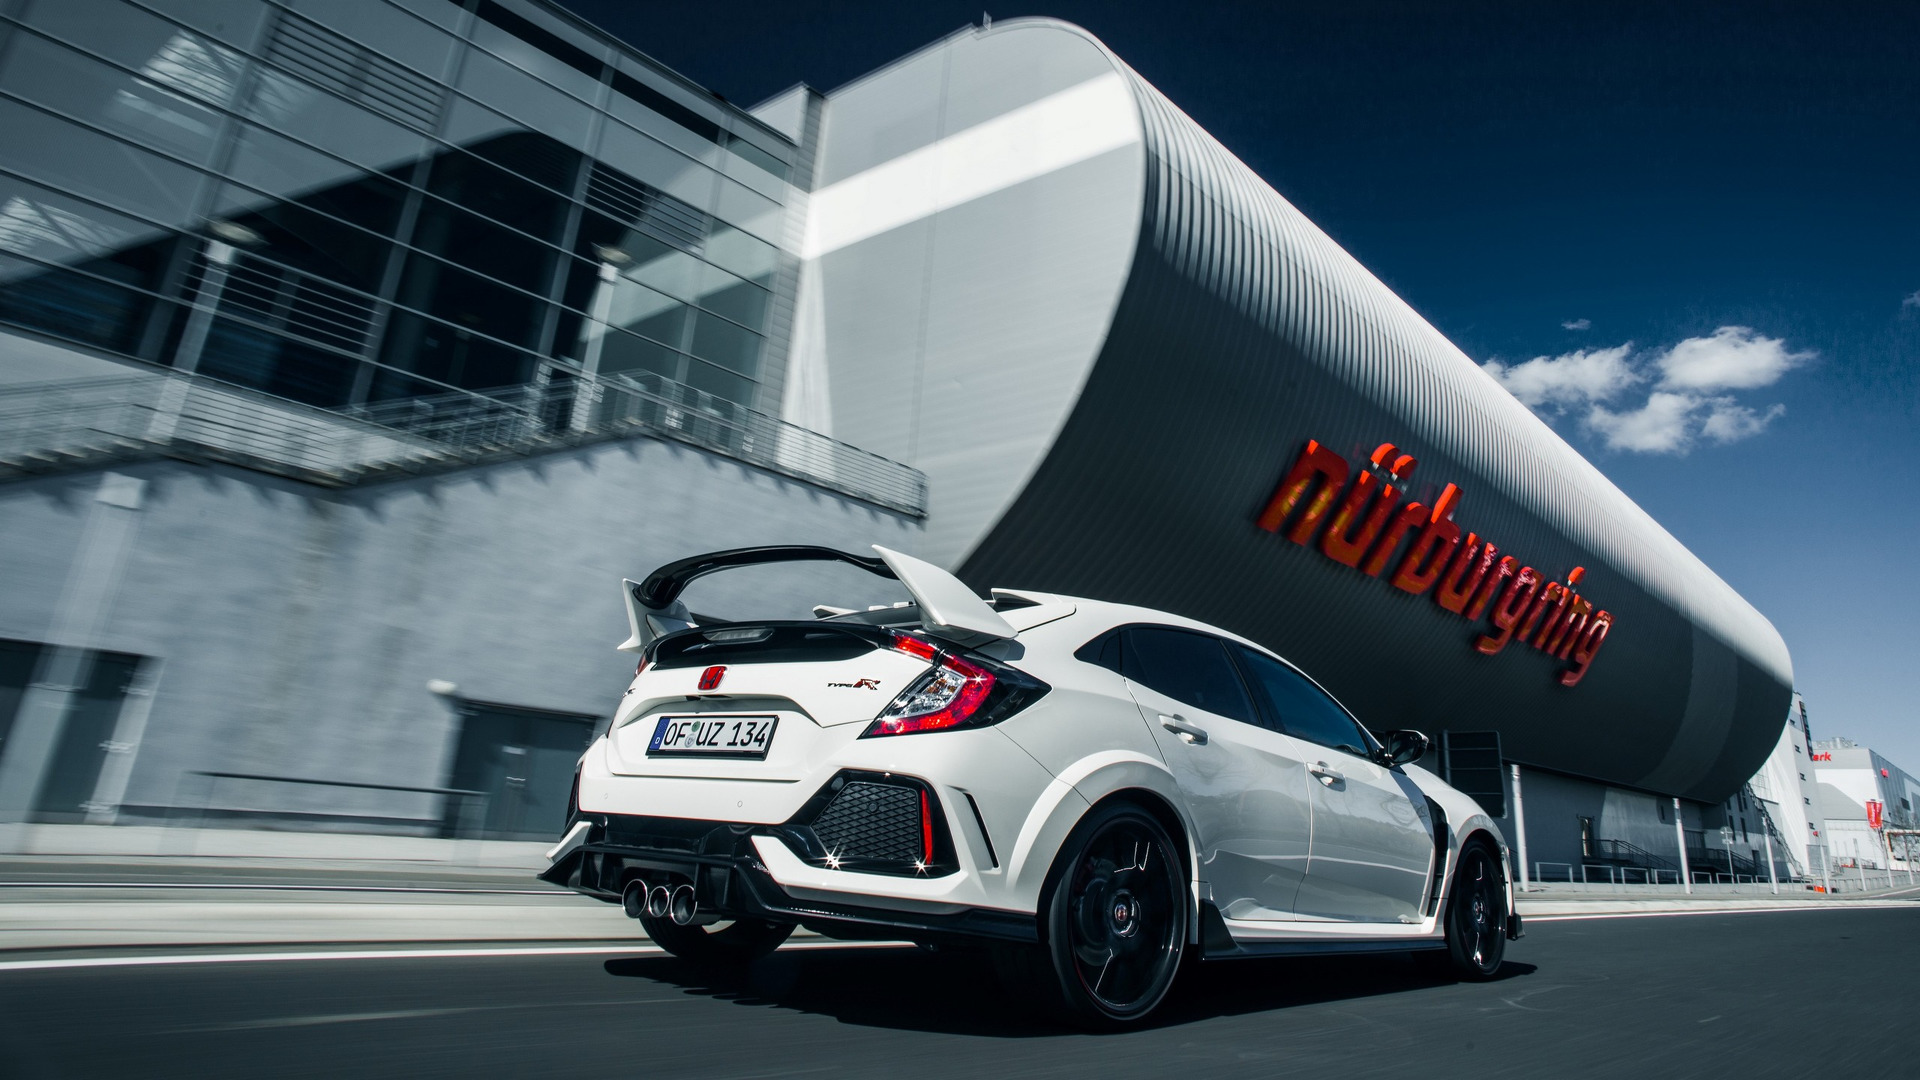 honda-civic-type-r-takes-dowbbn-nurburgring-lap-record-for-a-fwd-car